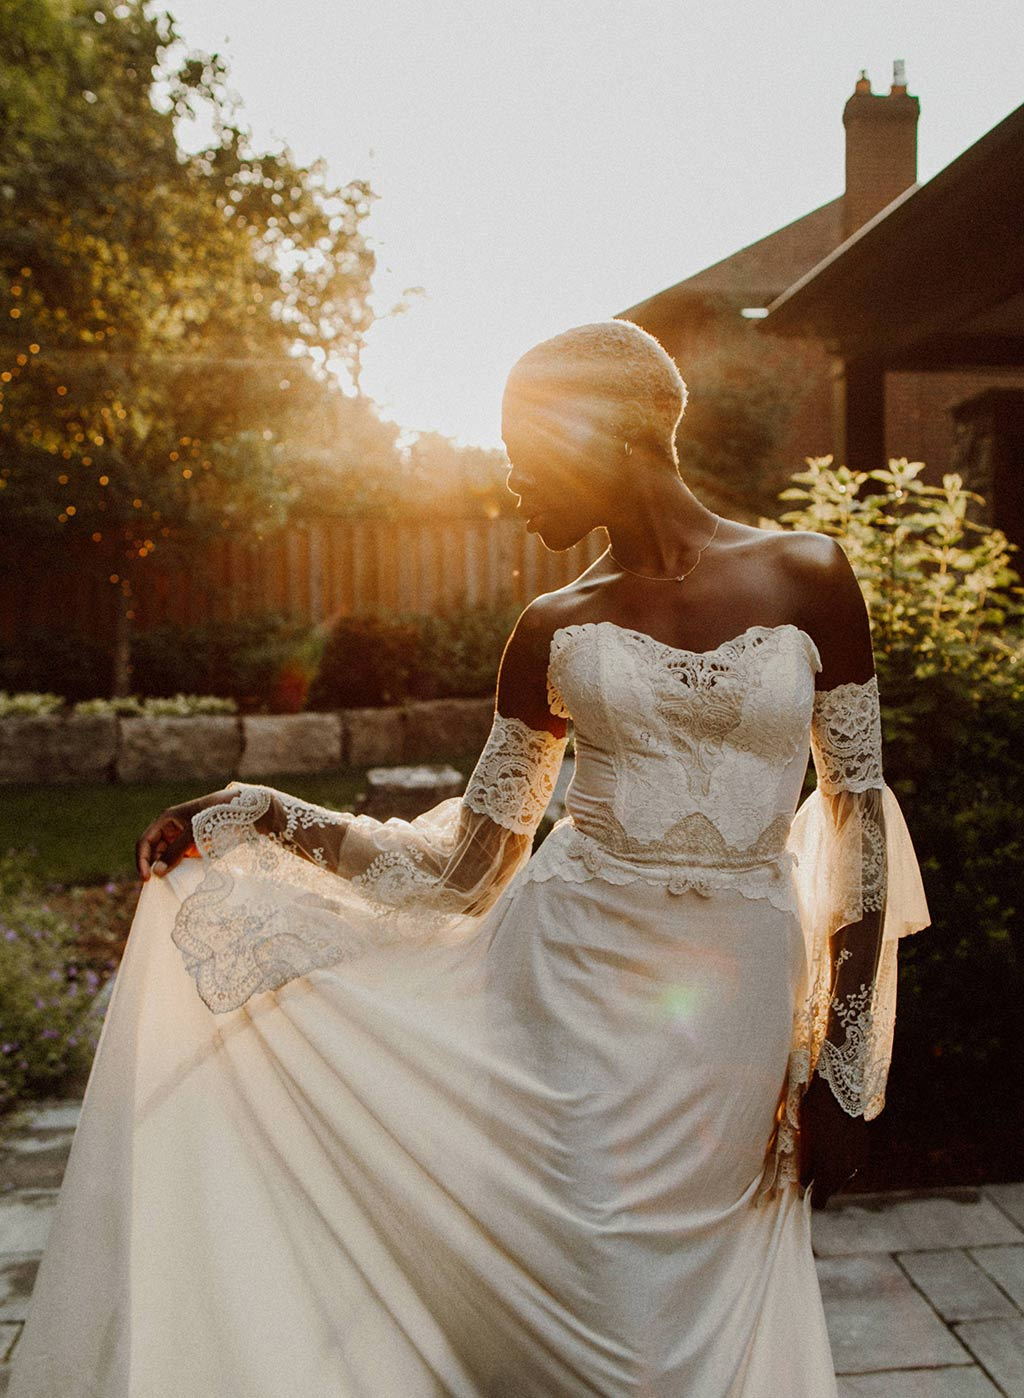 Marie Cotton and Lace Wedding Detail Dress Sunset View